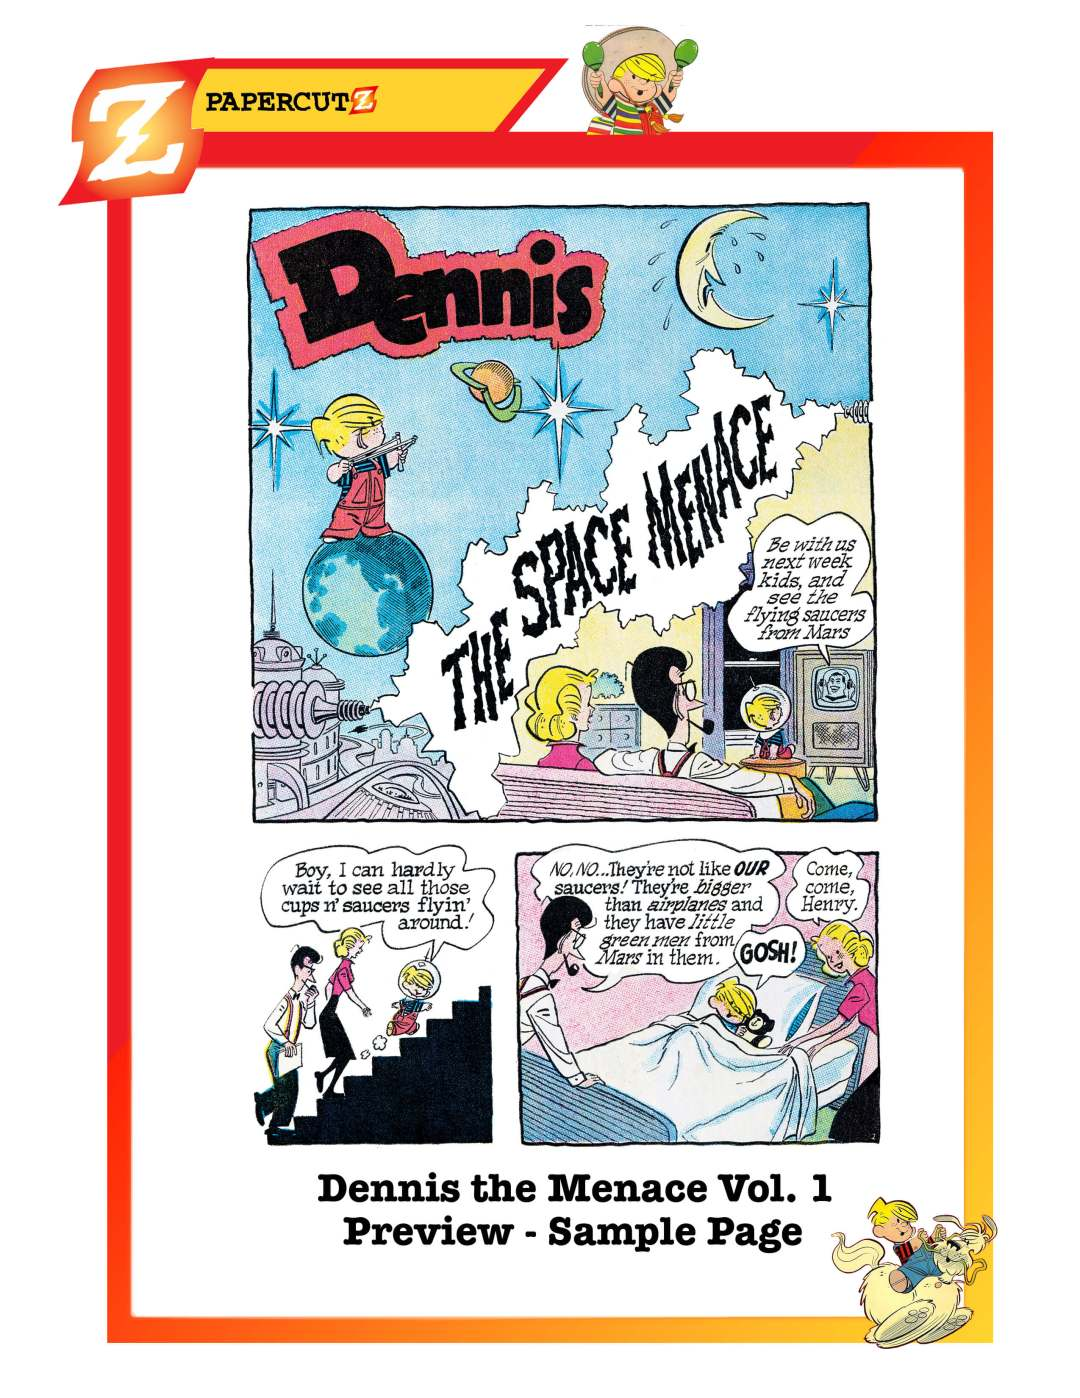 dennis_the_menace_vol1_sample_page1_preview